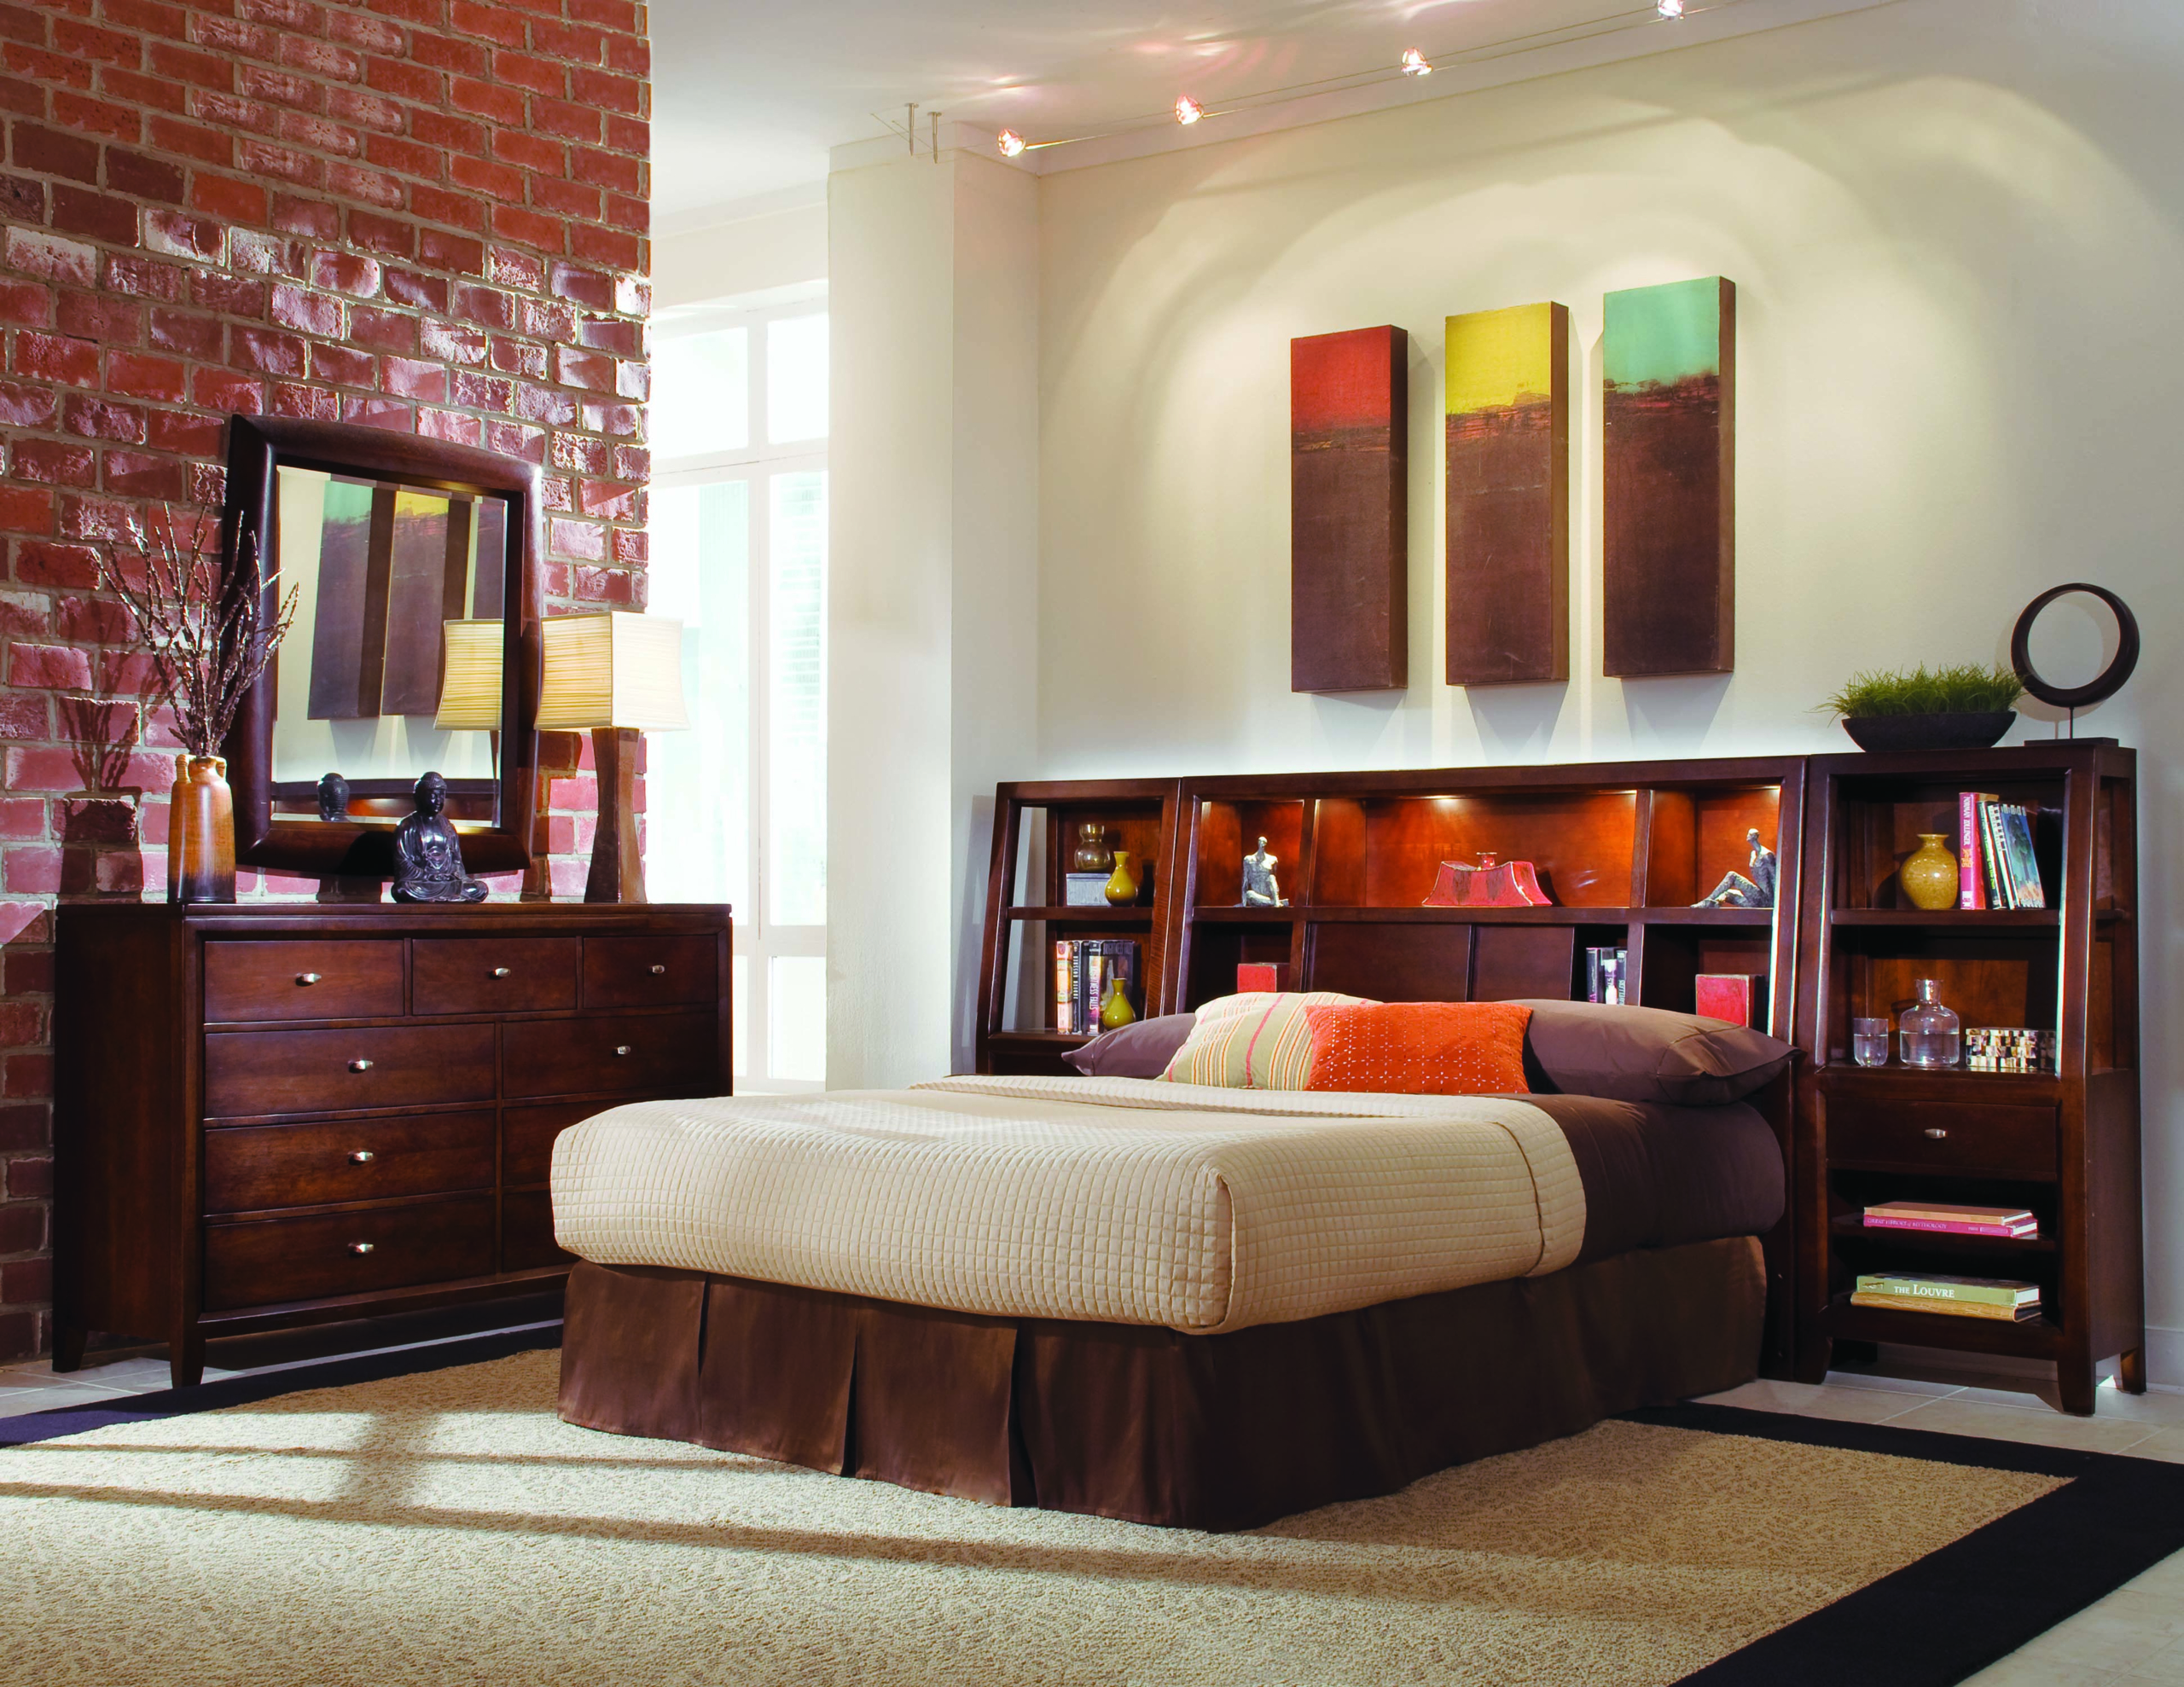 California King Bookcase Headboard Ideas On Foter Fascinating Mckenzie Bedroom Furniture Ideas Design